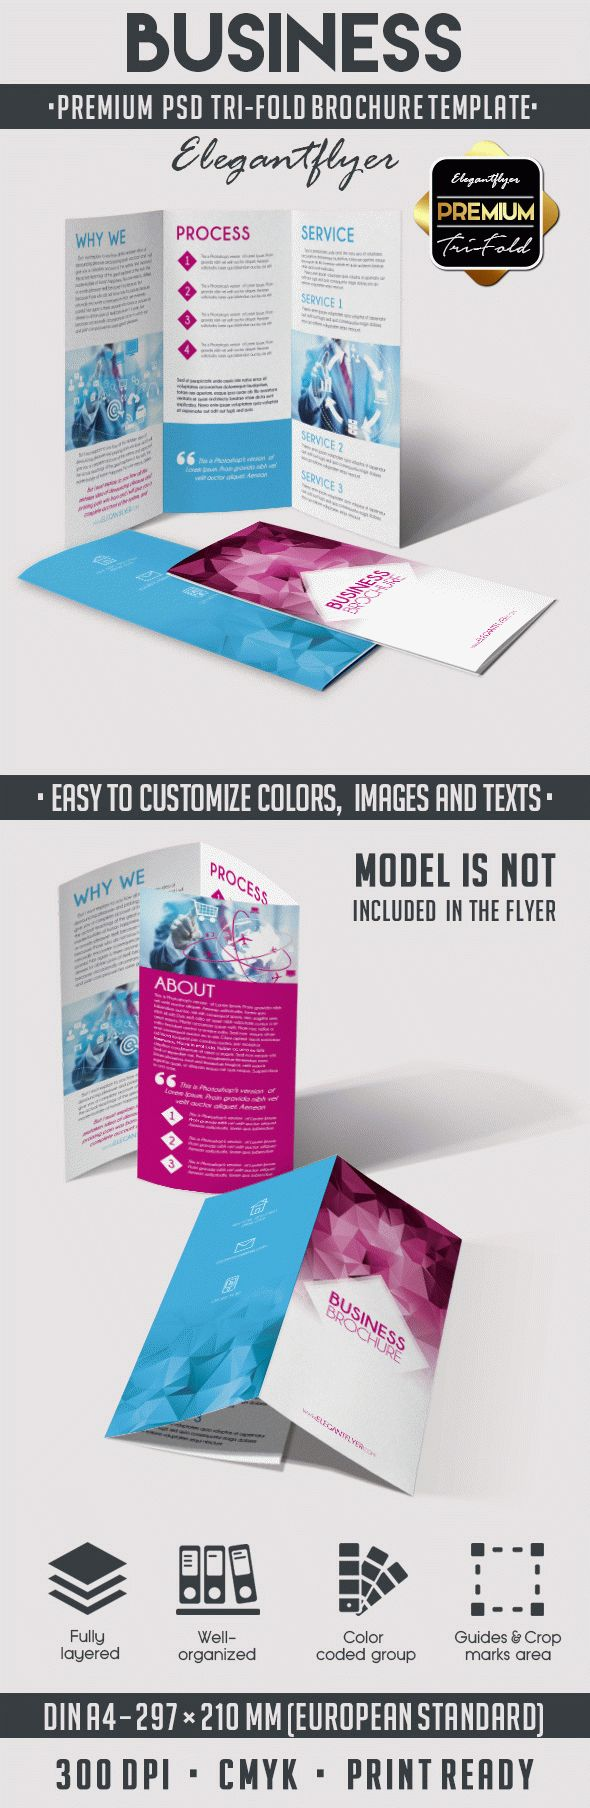 Business tri fold brochure psd template by elegantflyer for Tri fold brochure template psd